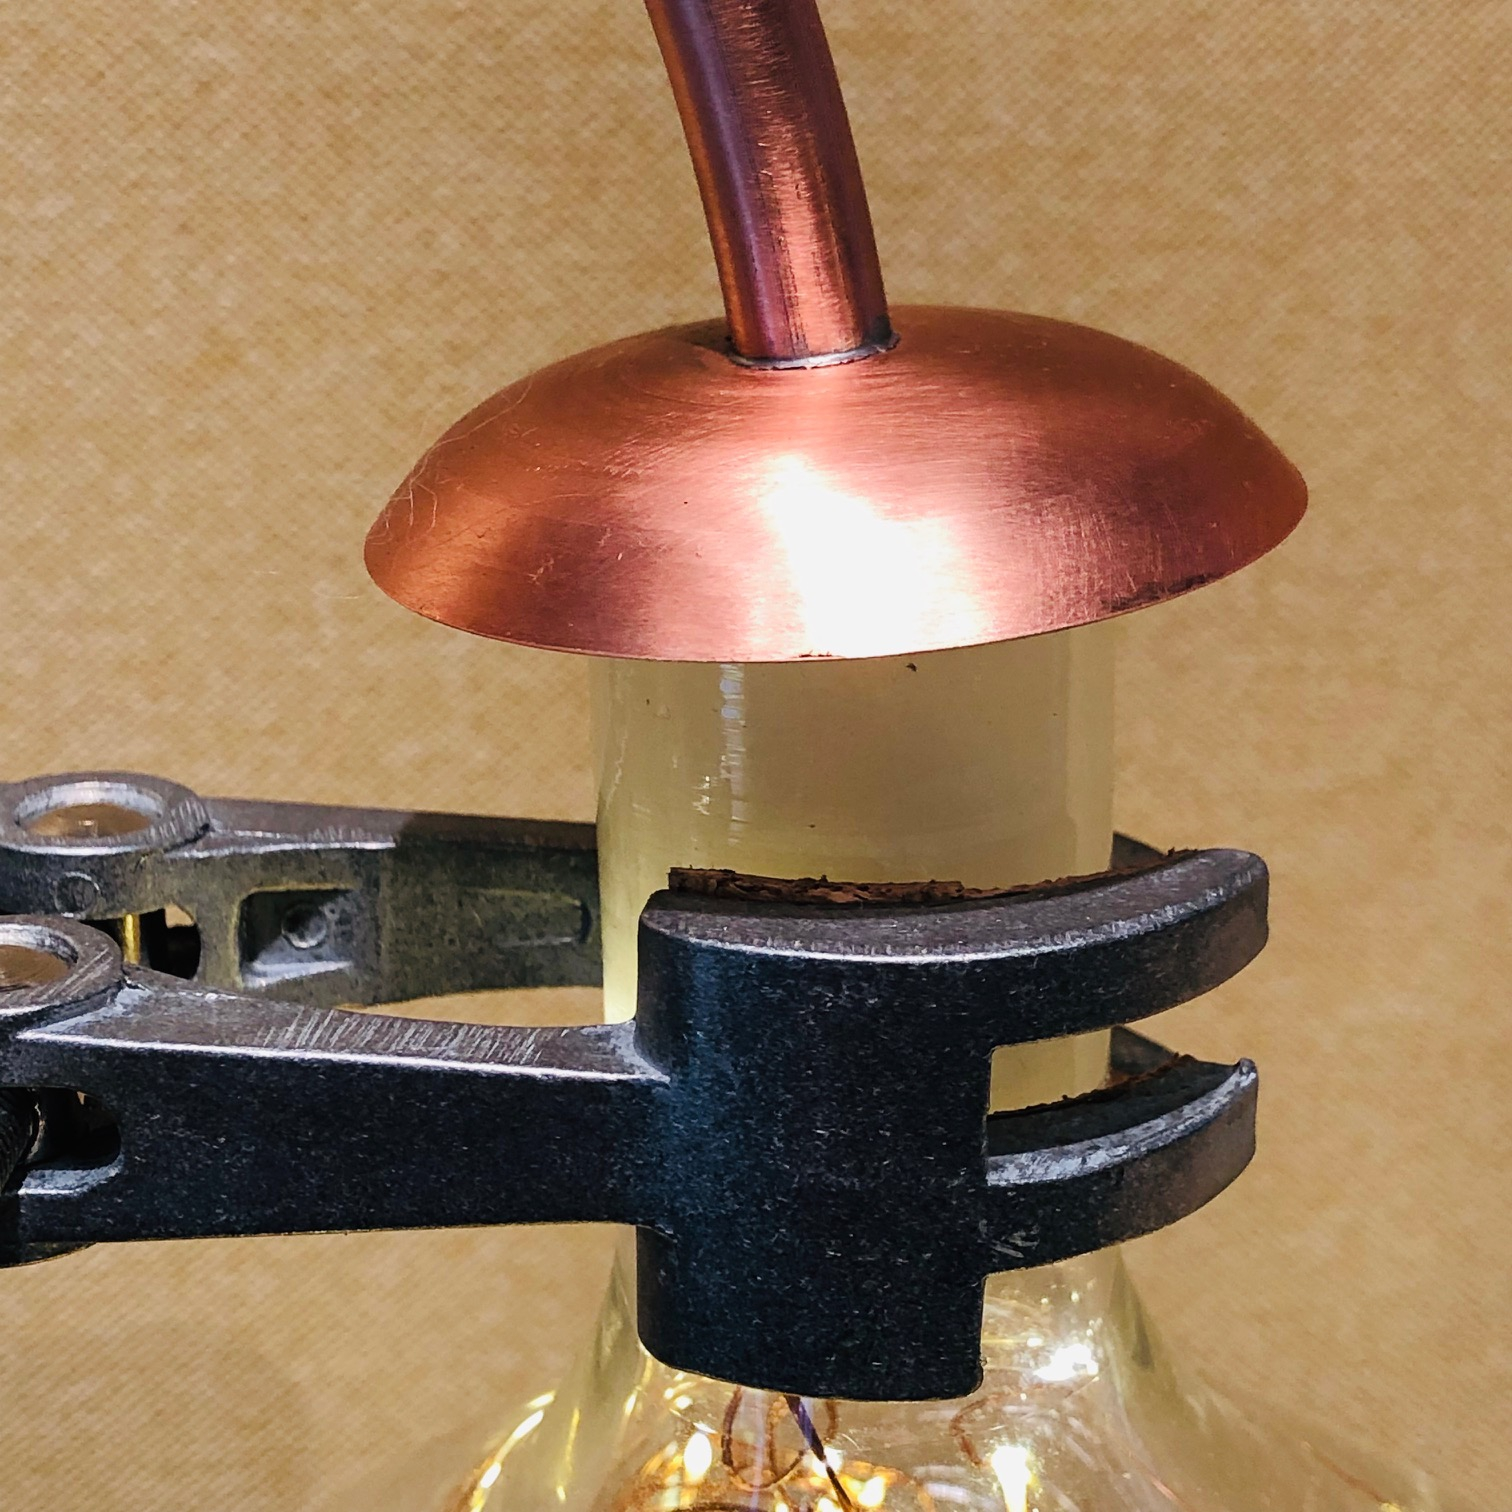 lamp detail showing copper, glass and iron